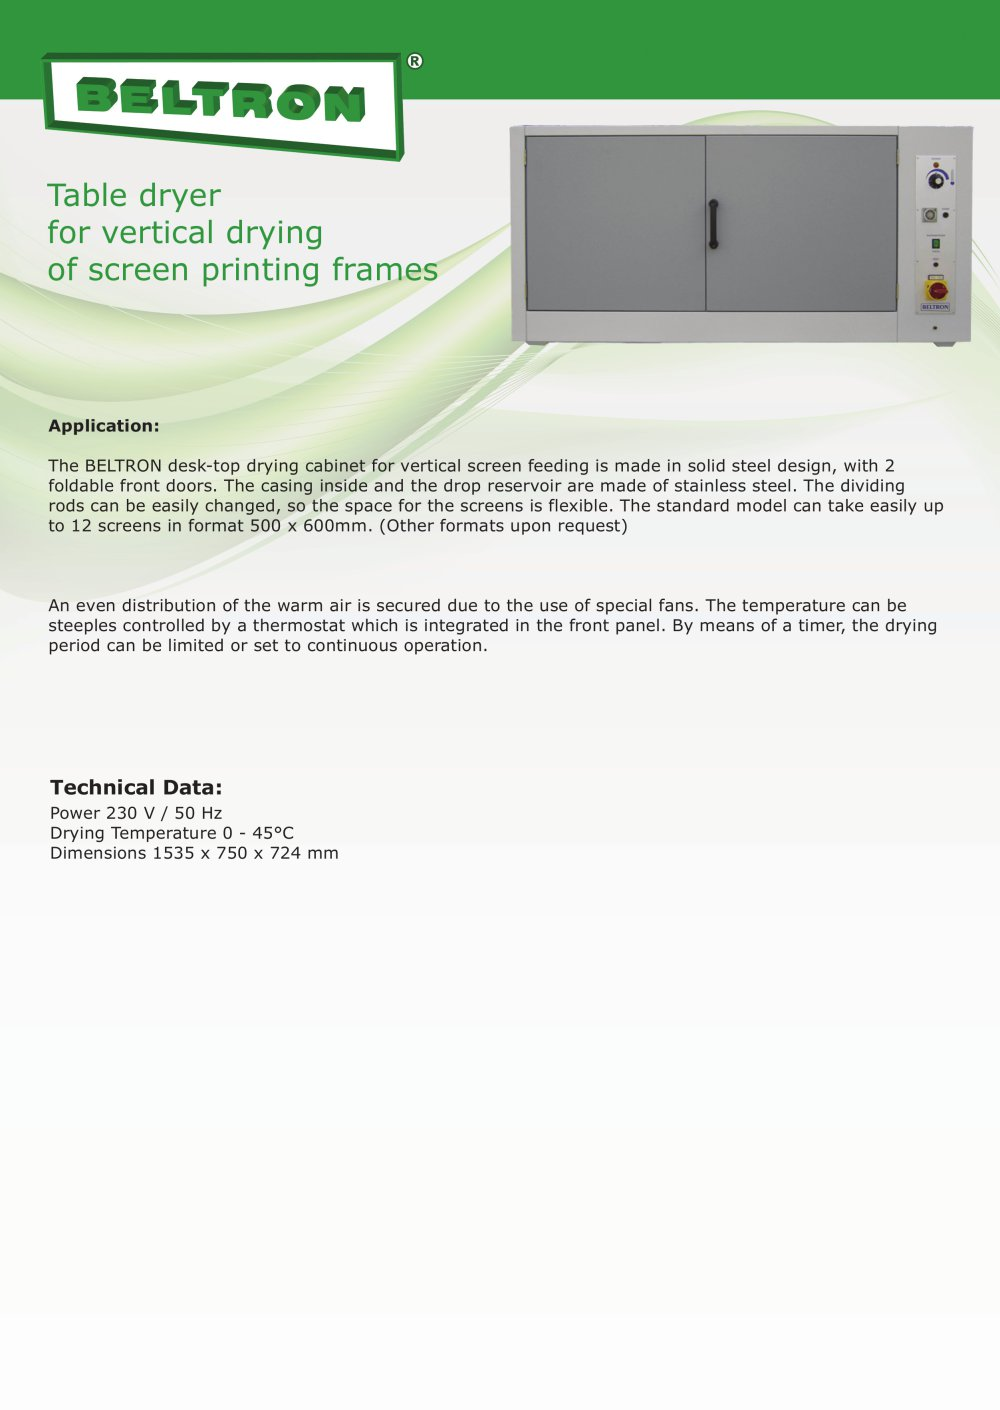 Table dryer for vertical drying of screen printing frames - Beltron ...